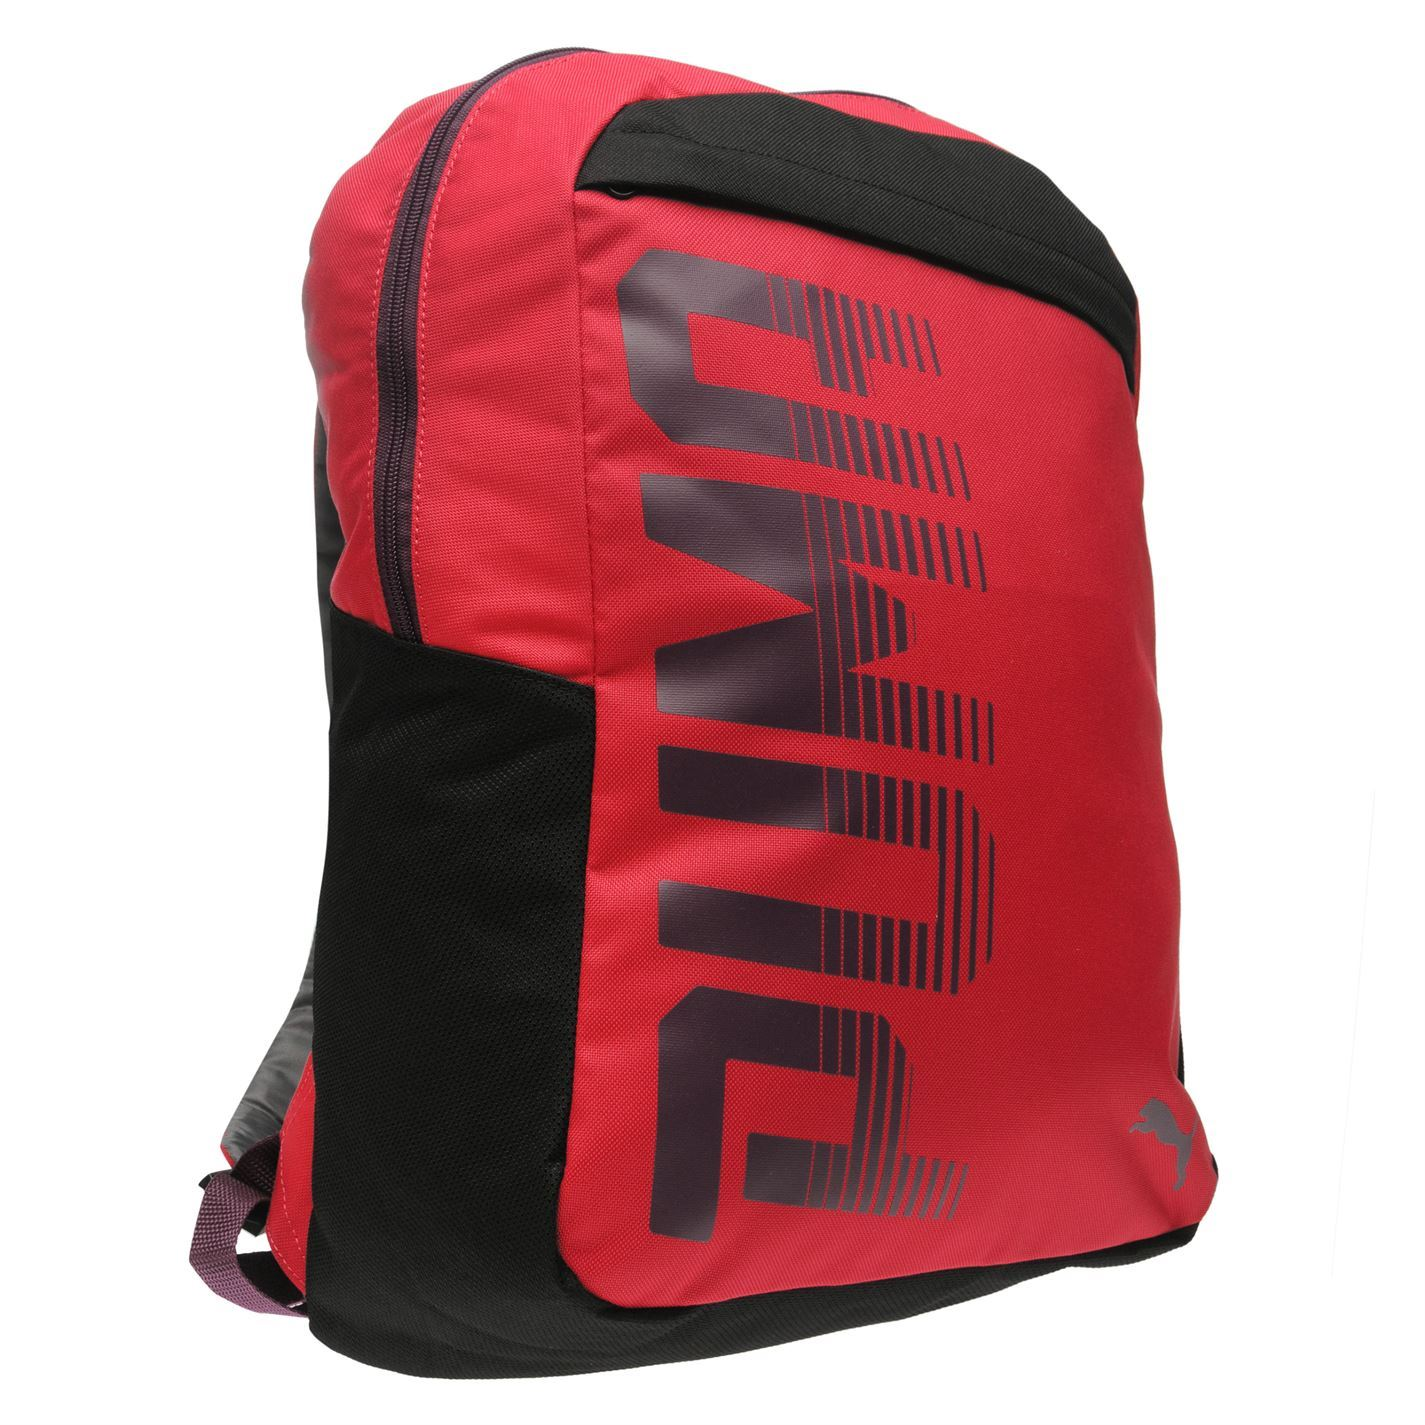 53e85ca350b Details about Puma Pioneer Backpack Pink Sports Bag Holdall Rucksack